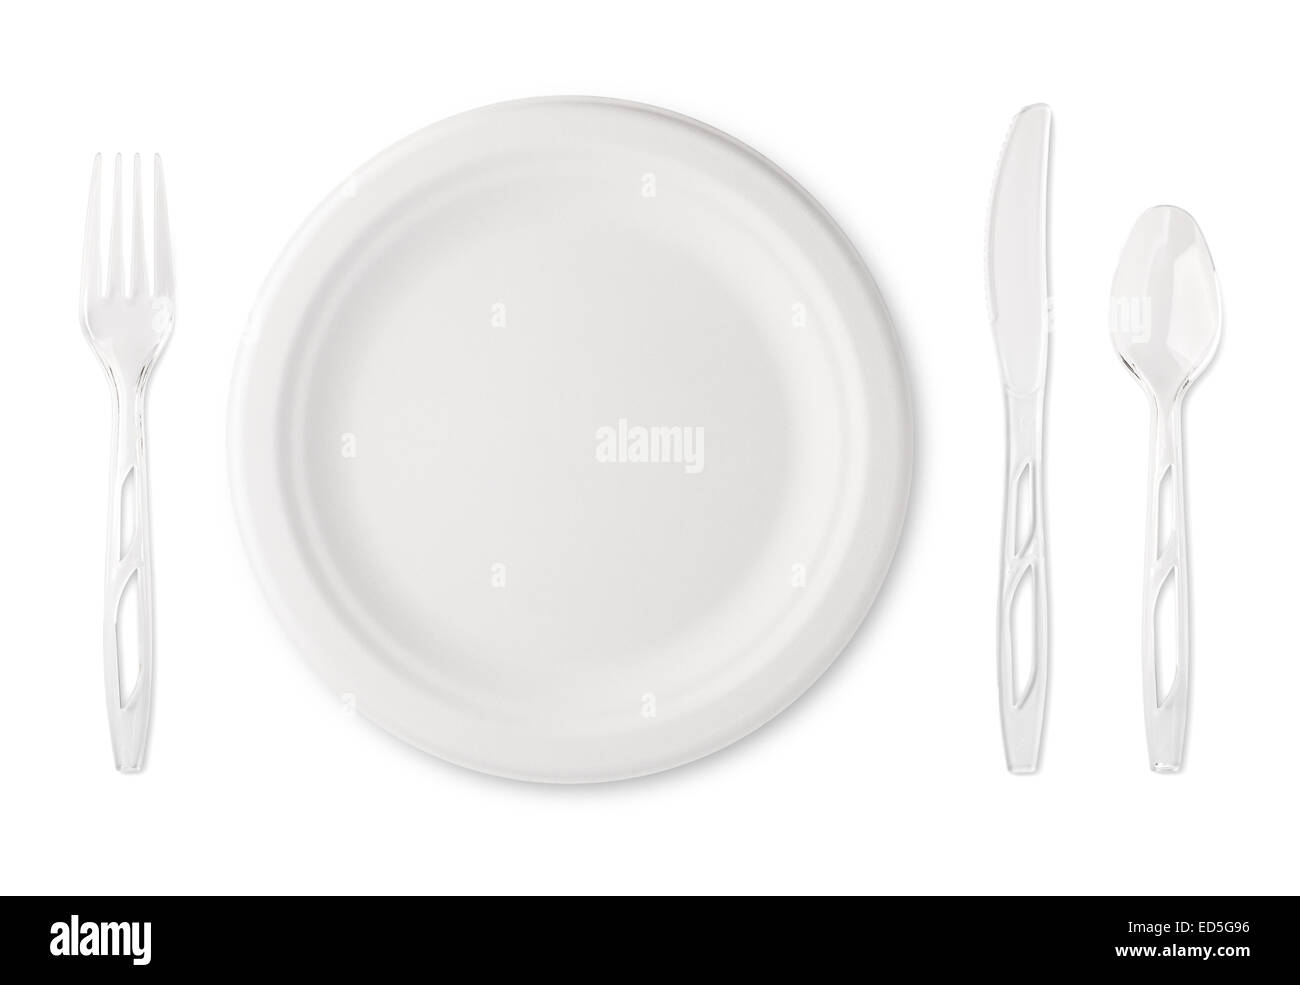 Paper Plate and clear plastic utensils - Stock Image